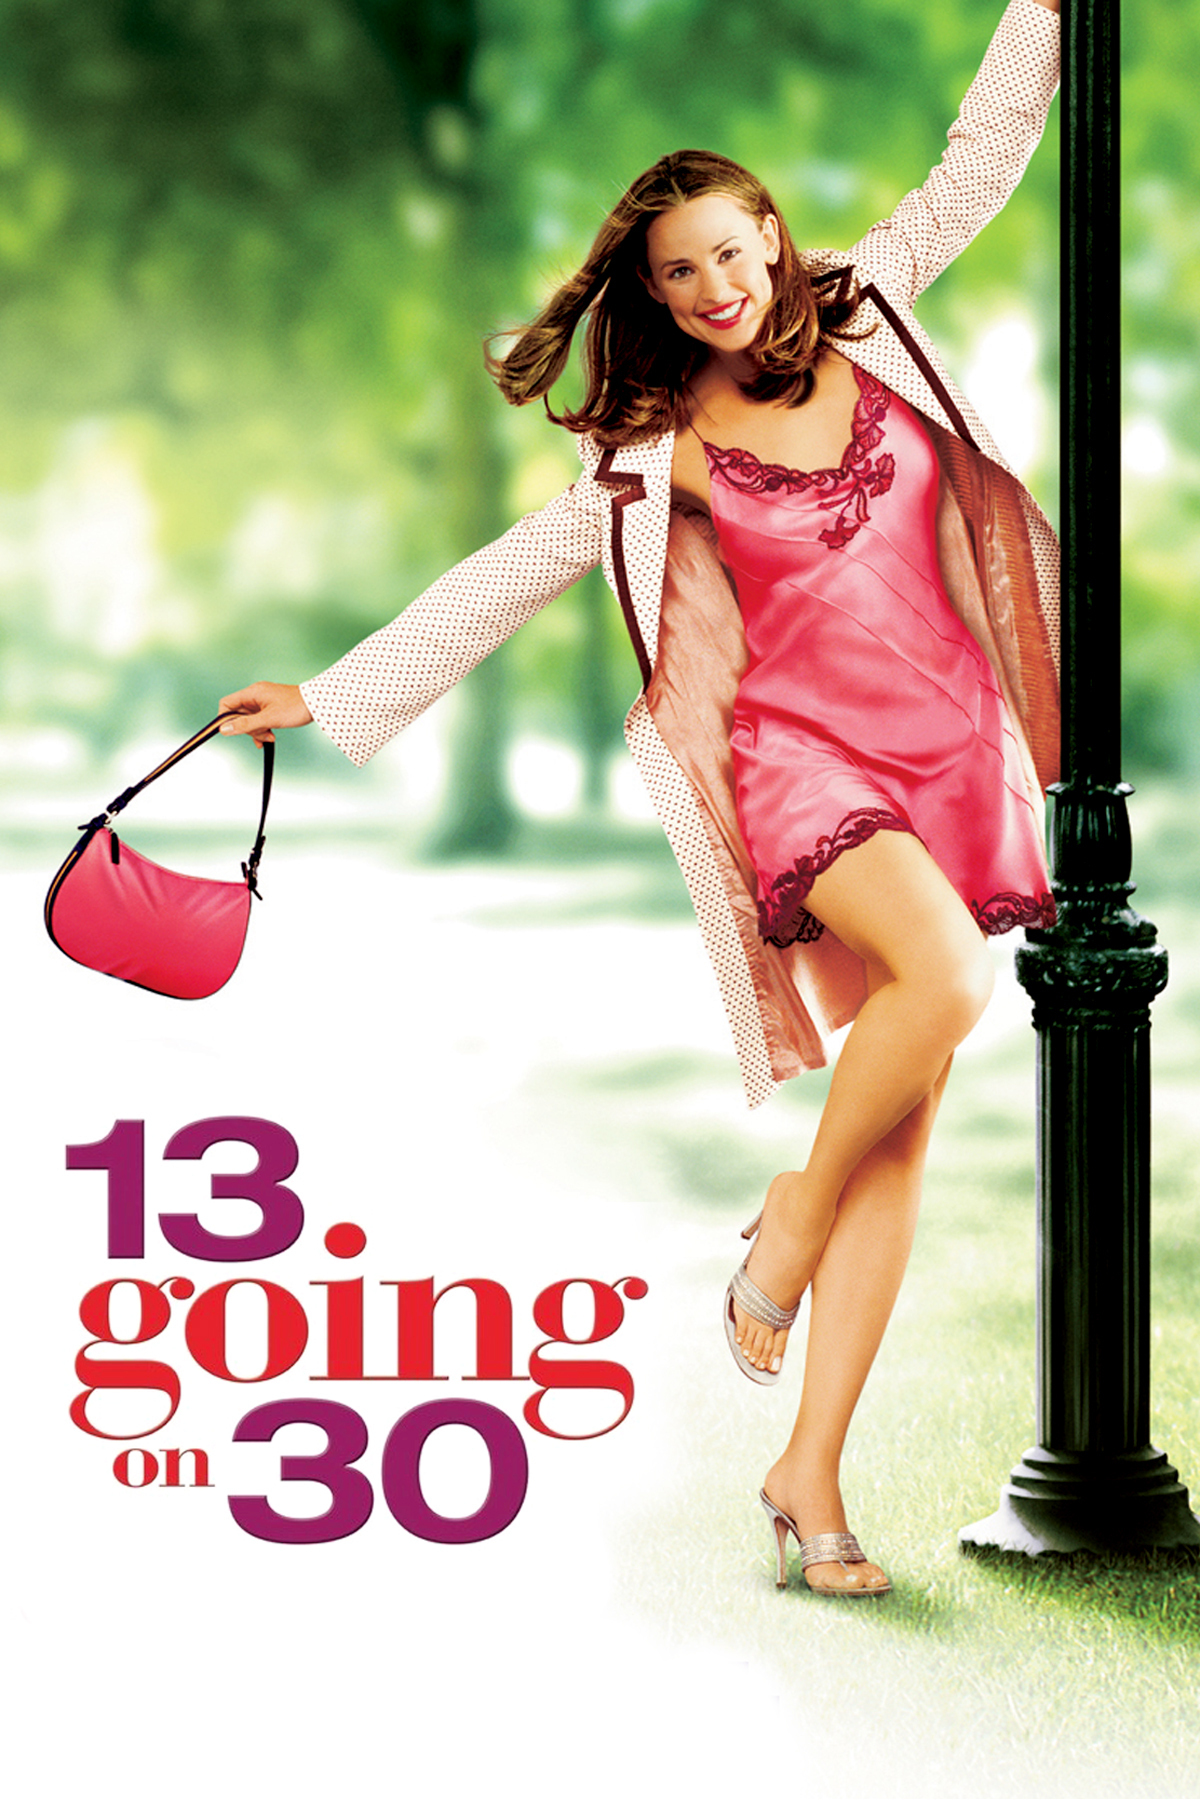 63443848_13-going-on-30-movie-poster-01.jpg